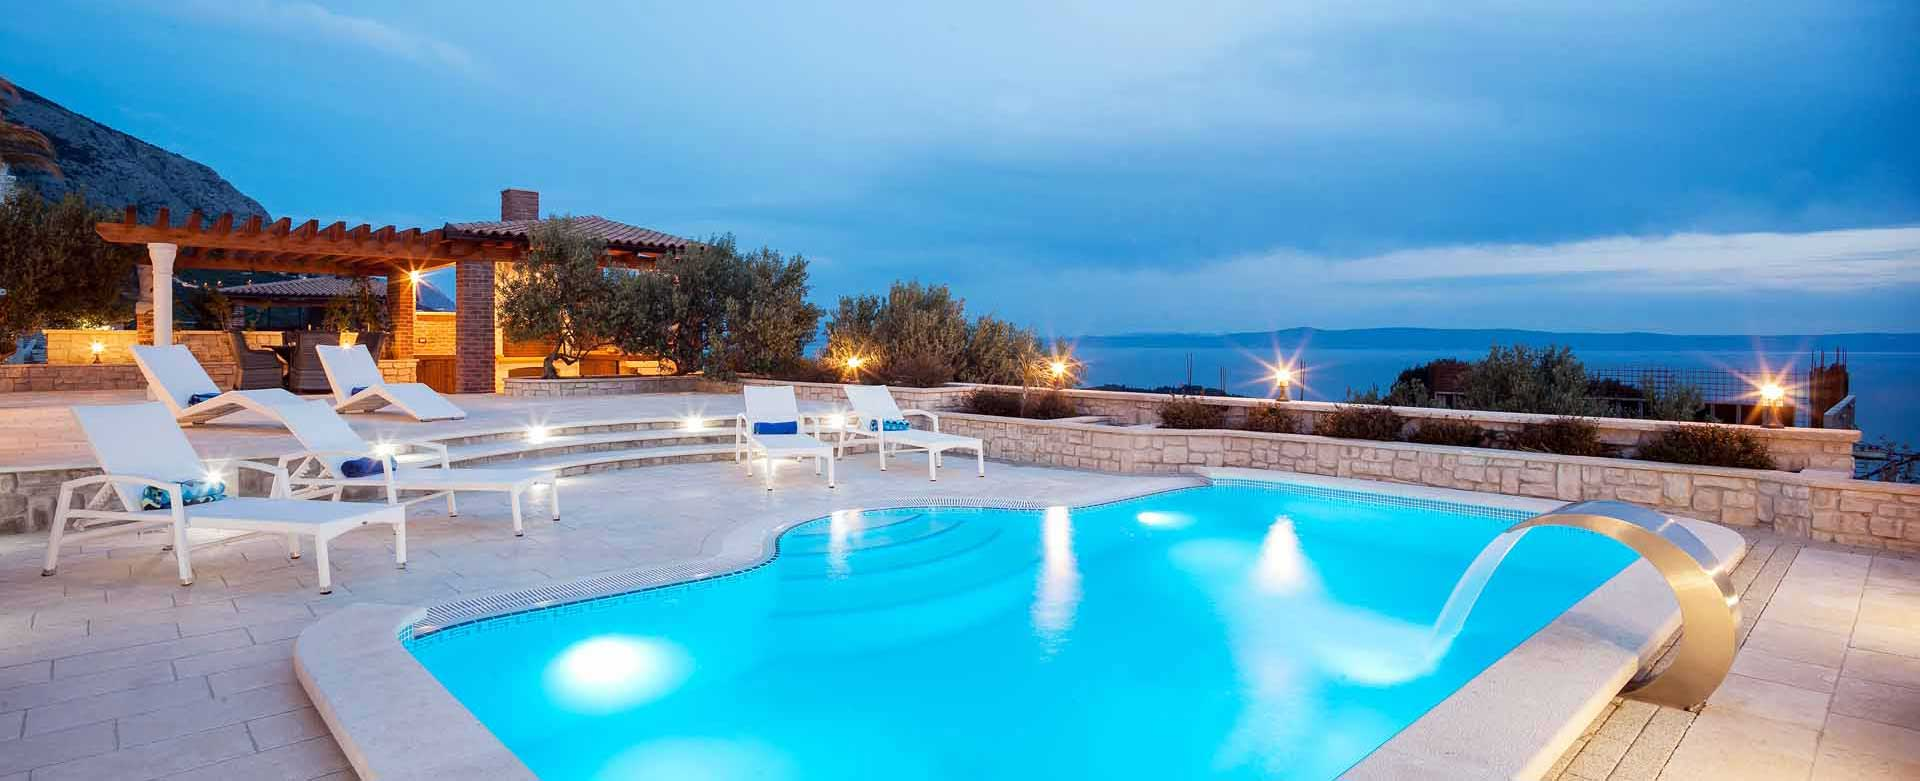 ferienhaus makarska mit pool. Black Bedroom Furniture Sets. Home Design Ideas